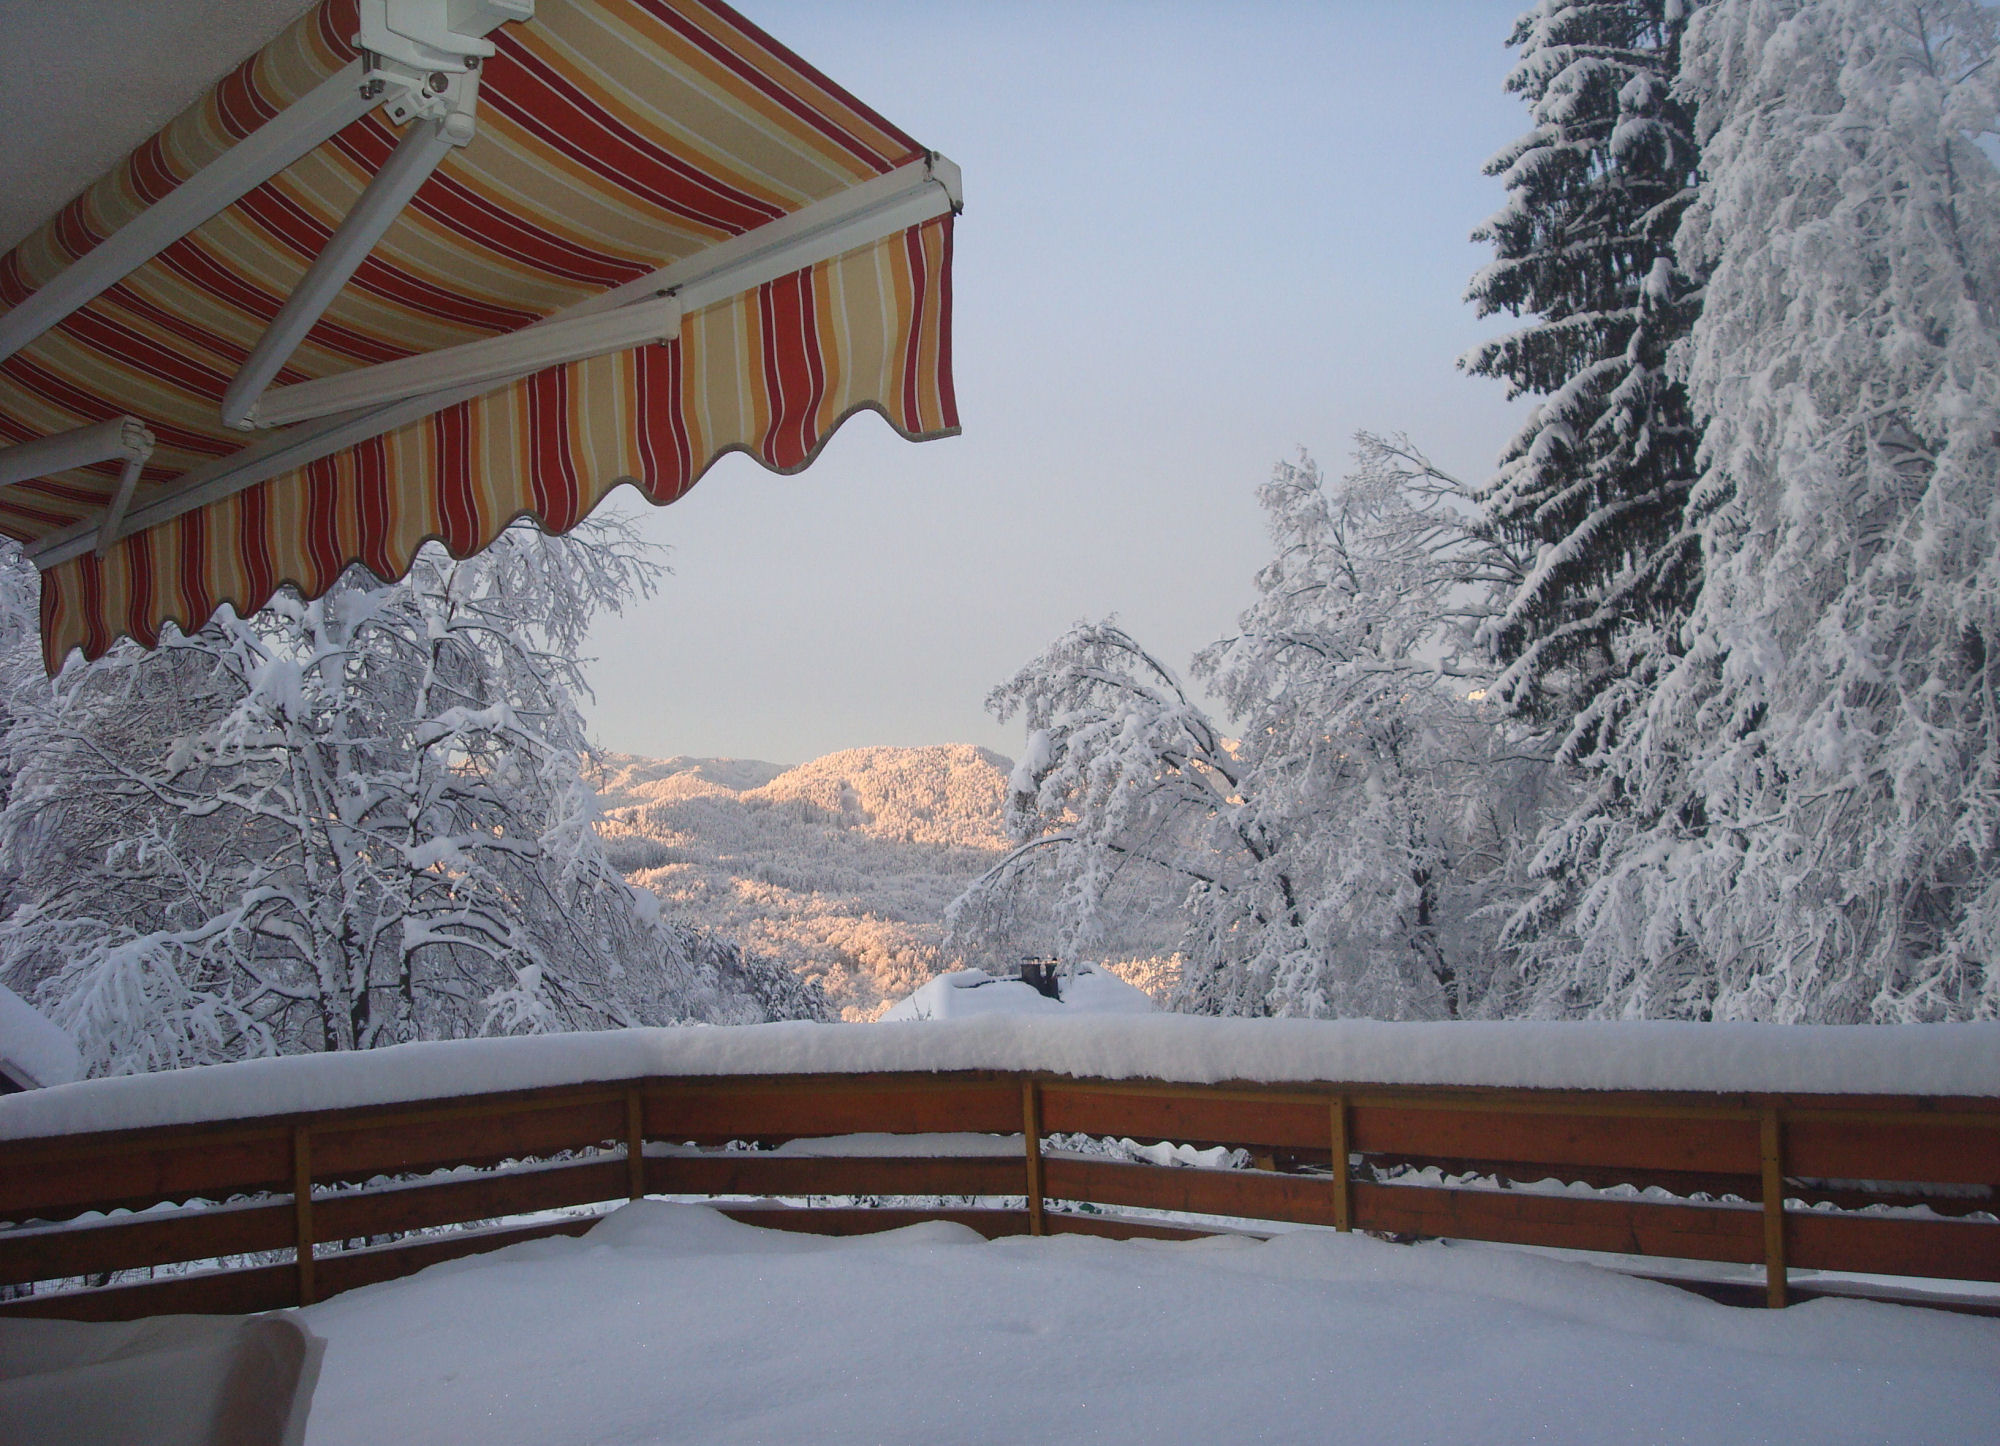 Apartment near Bled with nice winter view